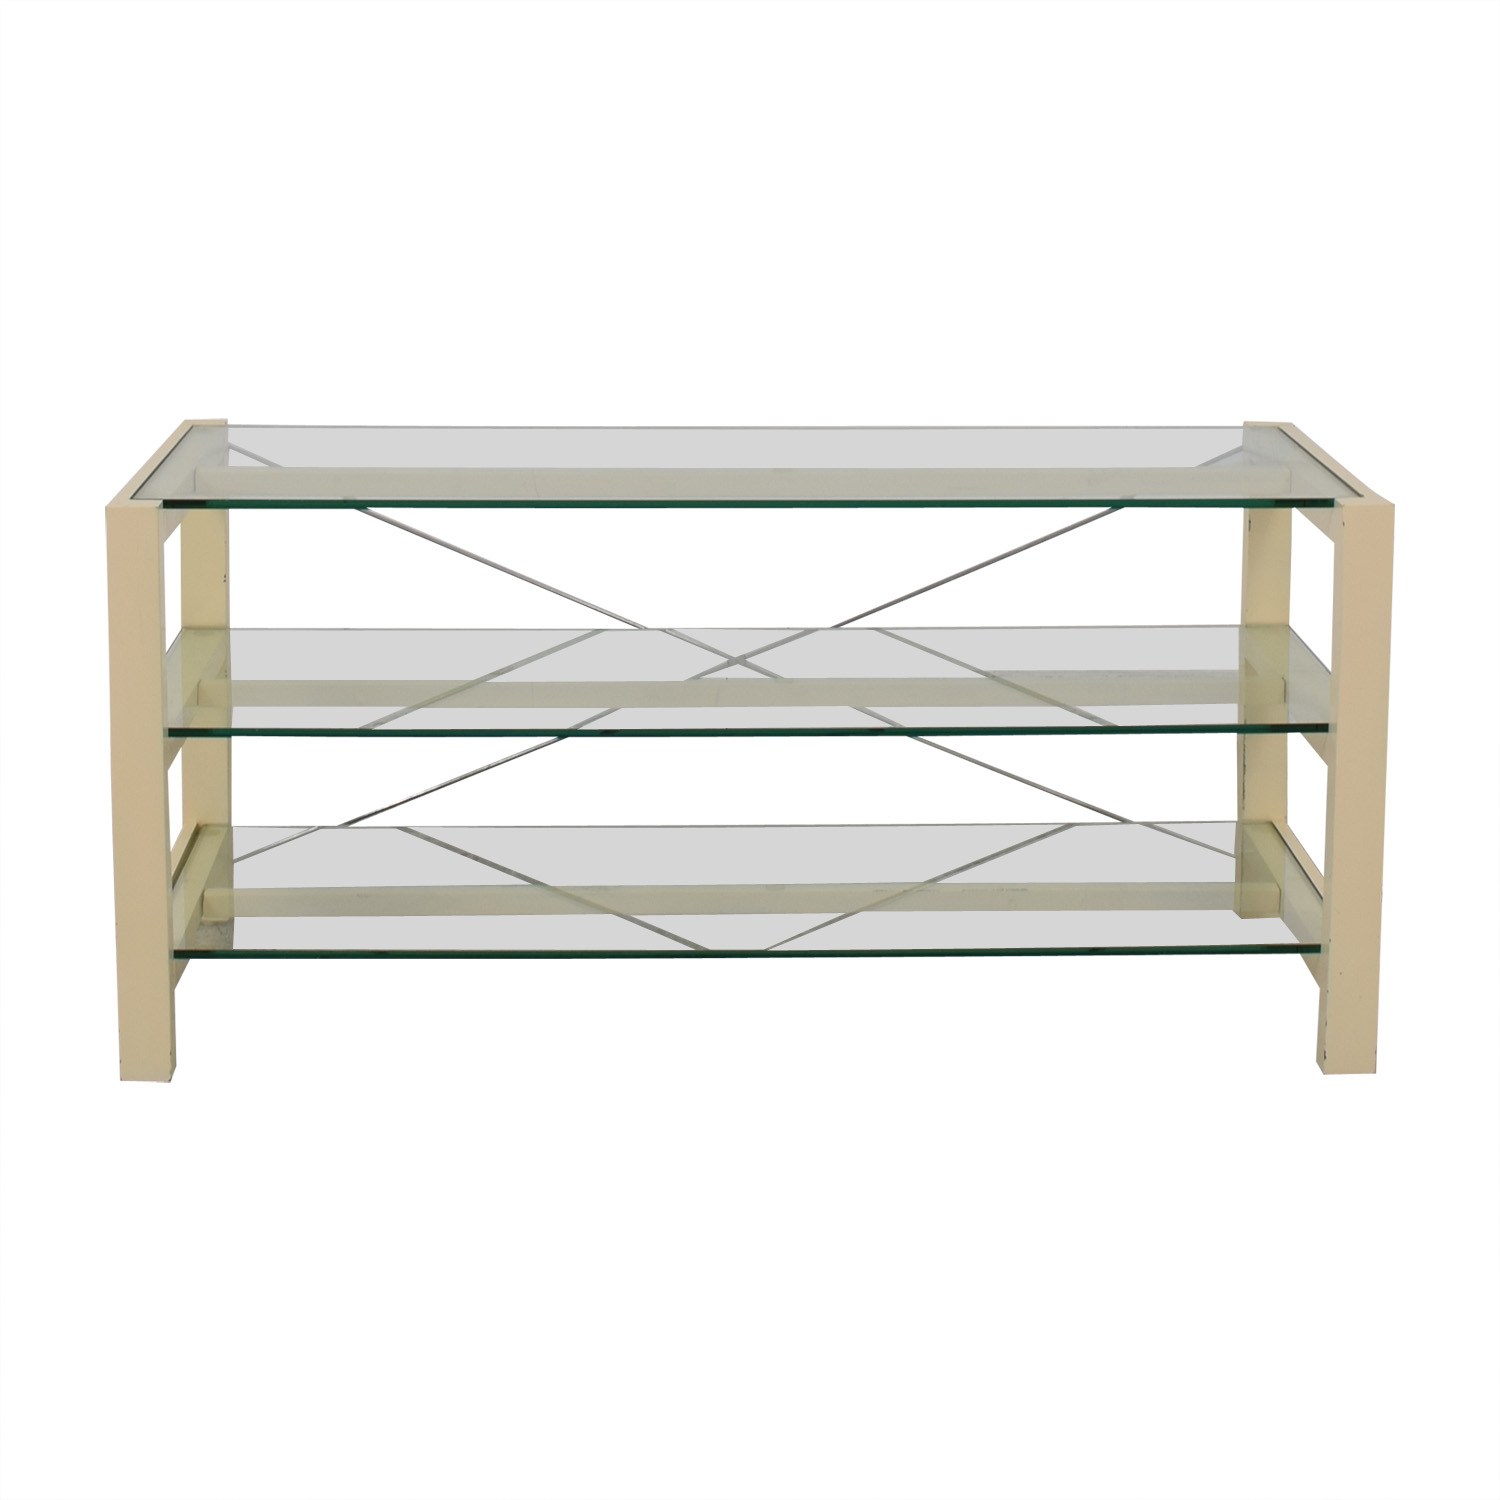 Crate & Barrel Crate & Barrel Glass Media Console nyc